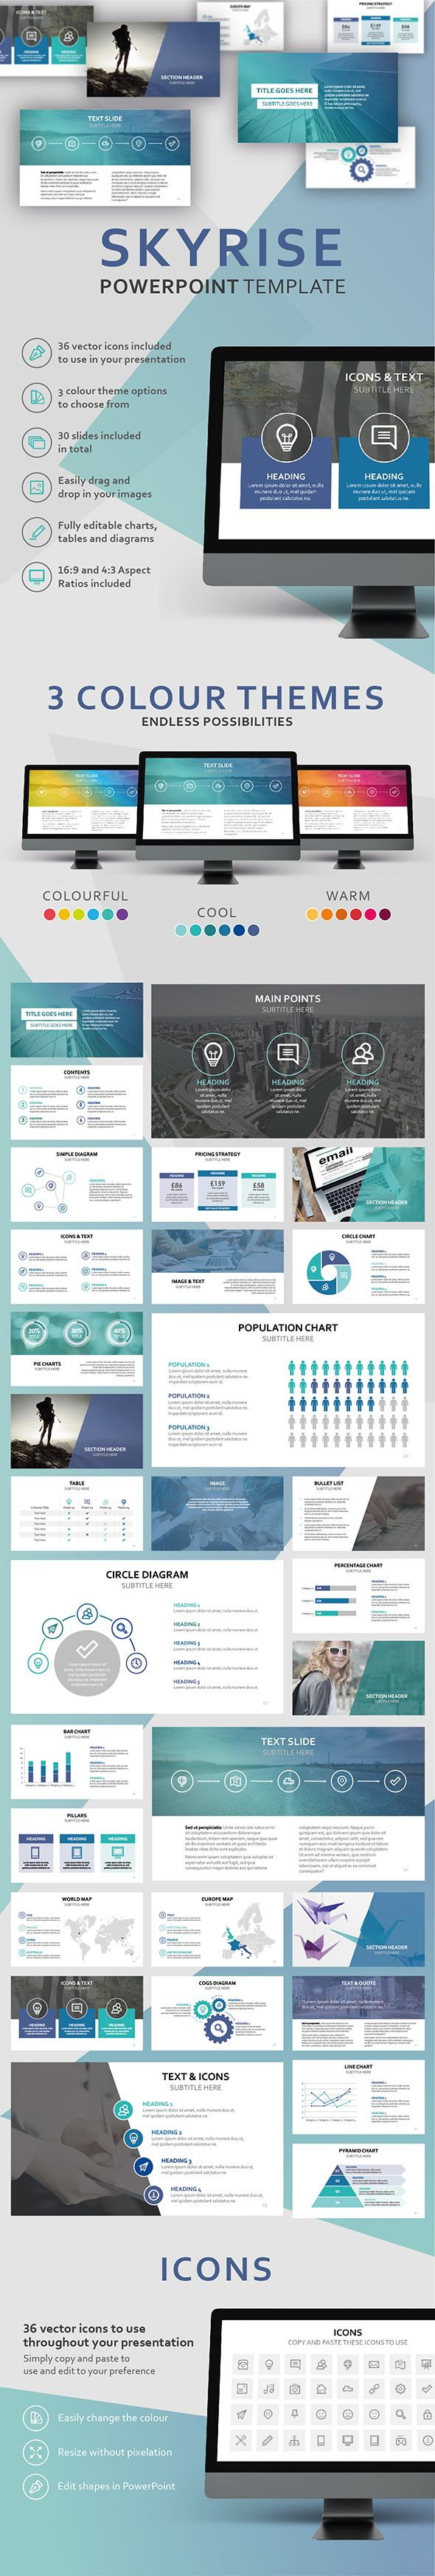 918 best powerpoint templates images on pinterest